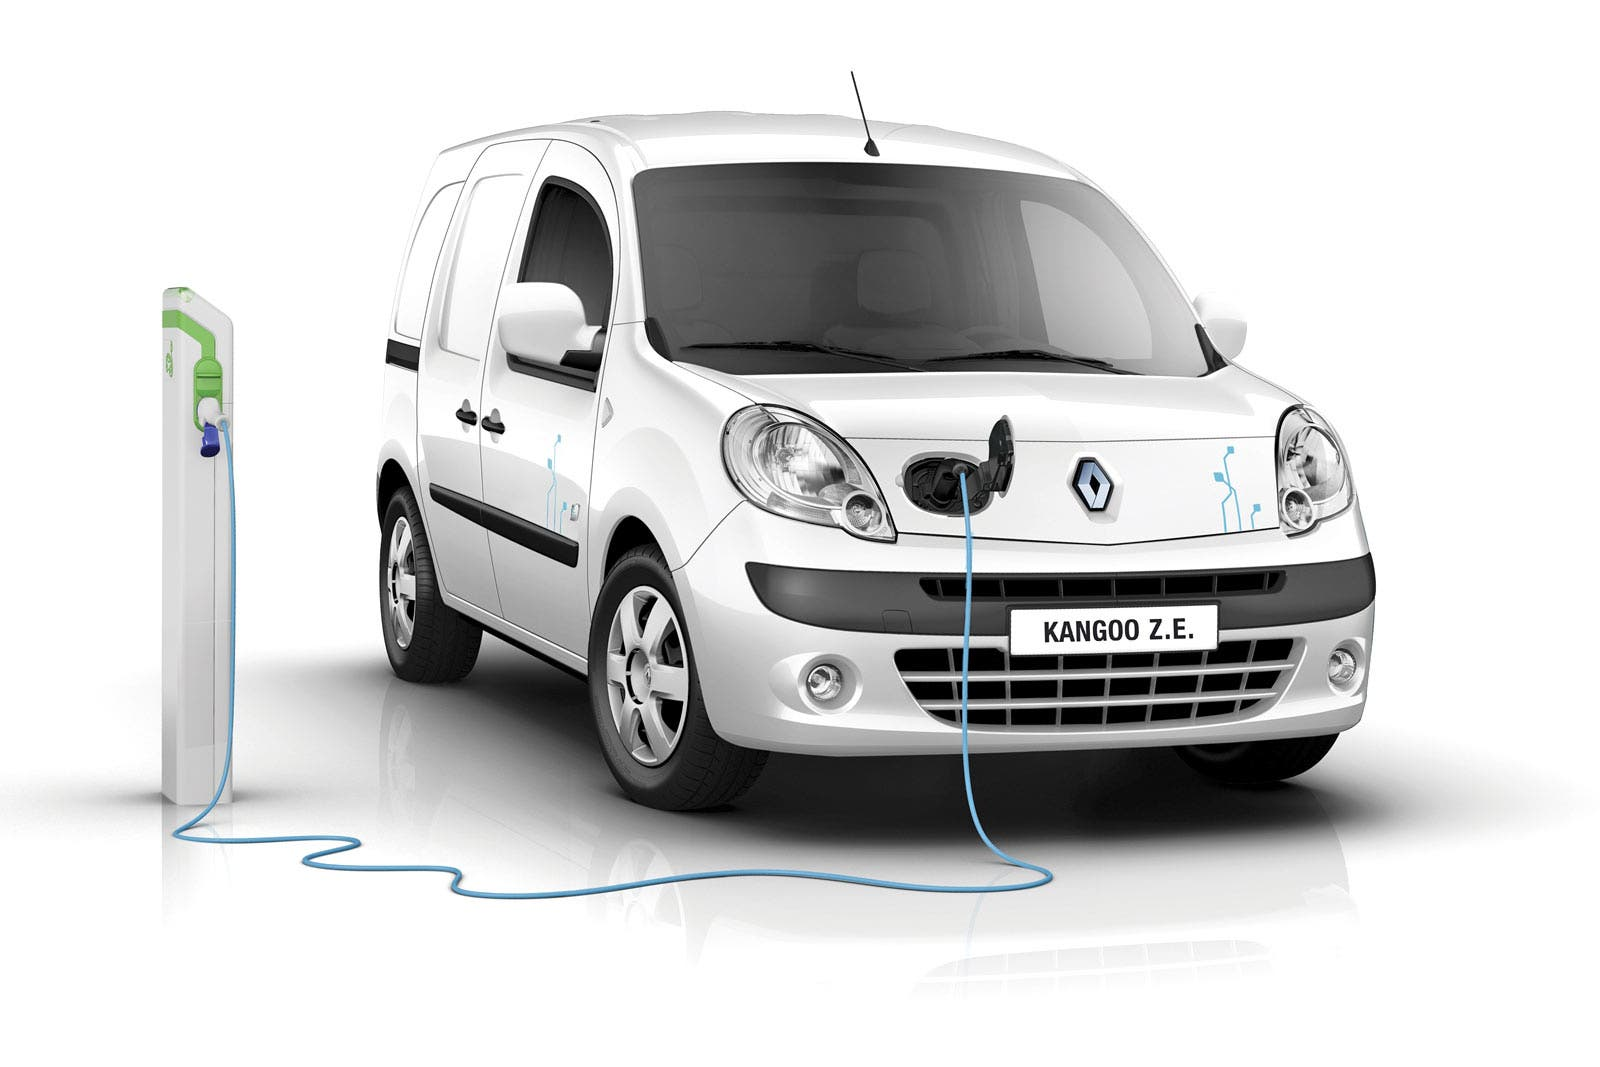 refreshed renault kangoo ze now on sale in europe with improved range cleantechnica. Black Bedroom Furniture Sets. Home Design Ideas